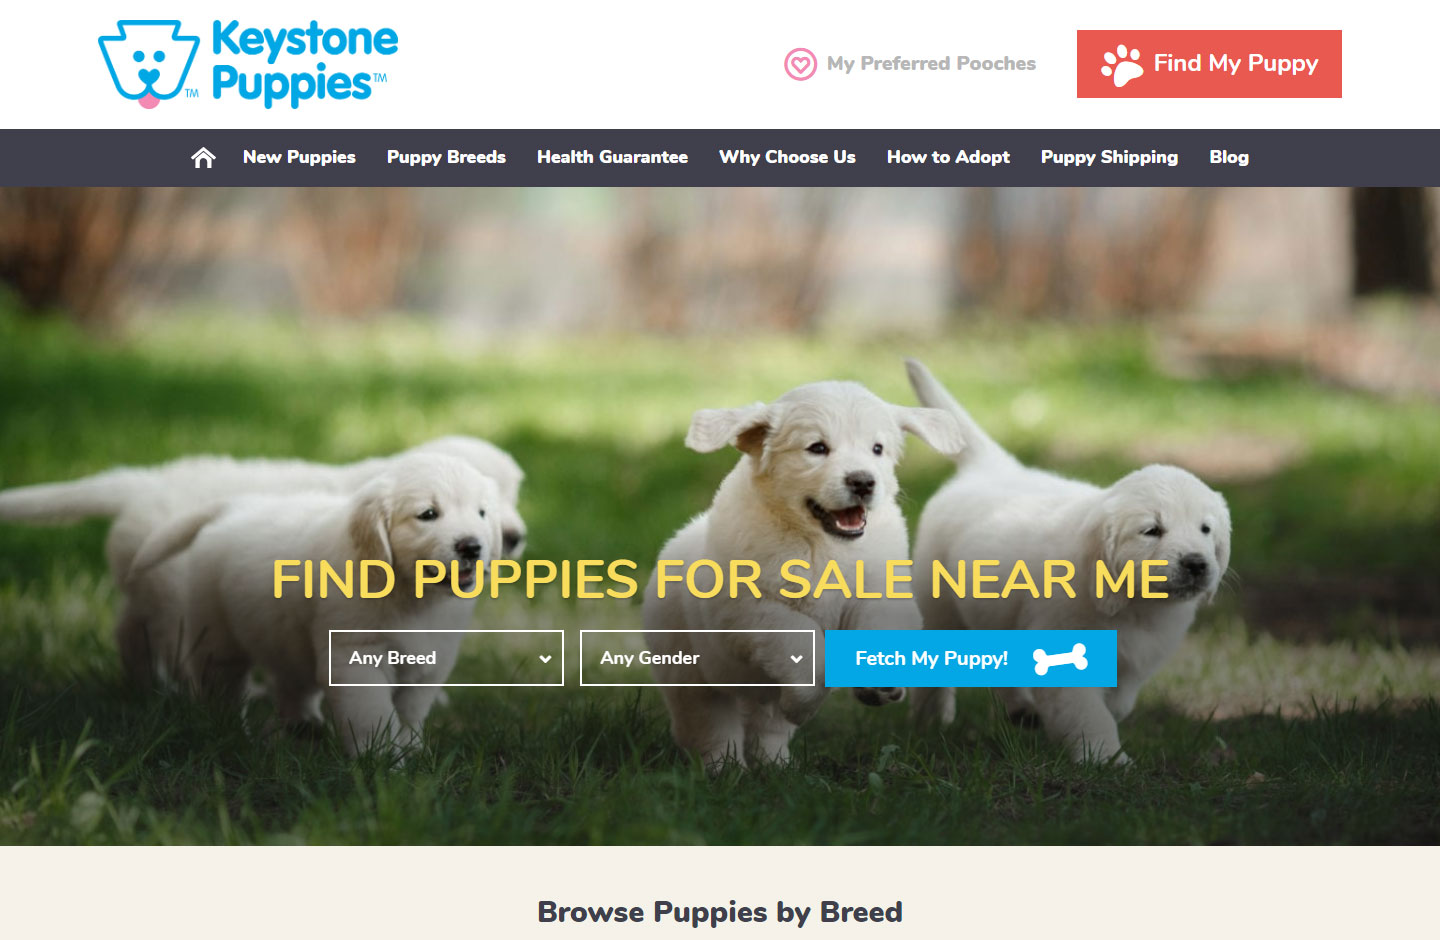 Keystone Puppies